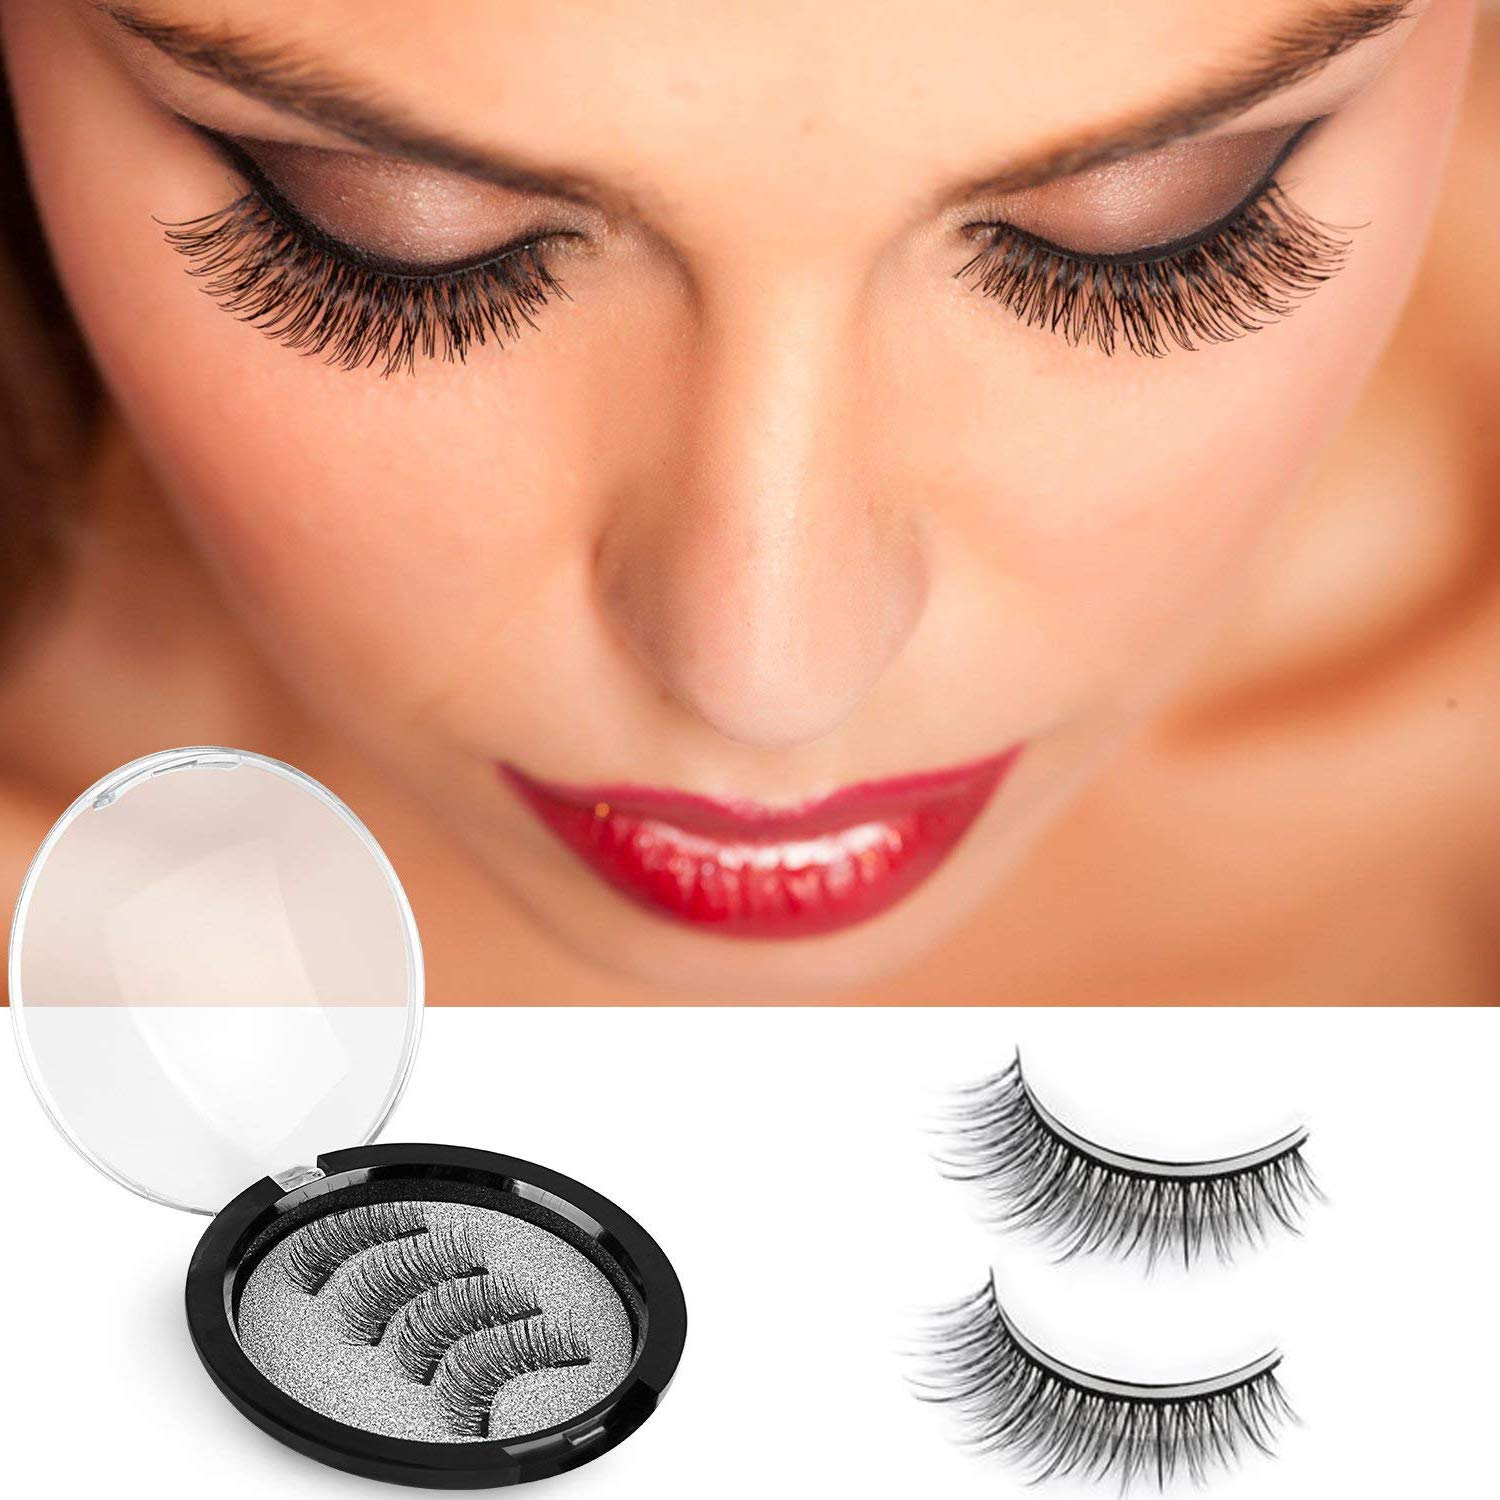 418a64bbf58 Amazon.com : Dual Magnetic False Eyelashes, Fancar 3D Fiber Magnetic Lashes  Extension- Best Reusable and Easy to Apply, Long Lasting Natural and ...